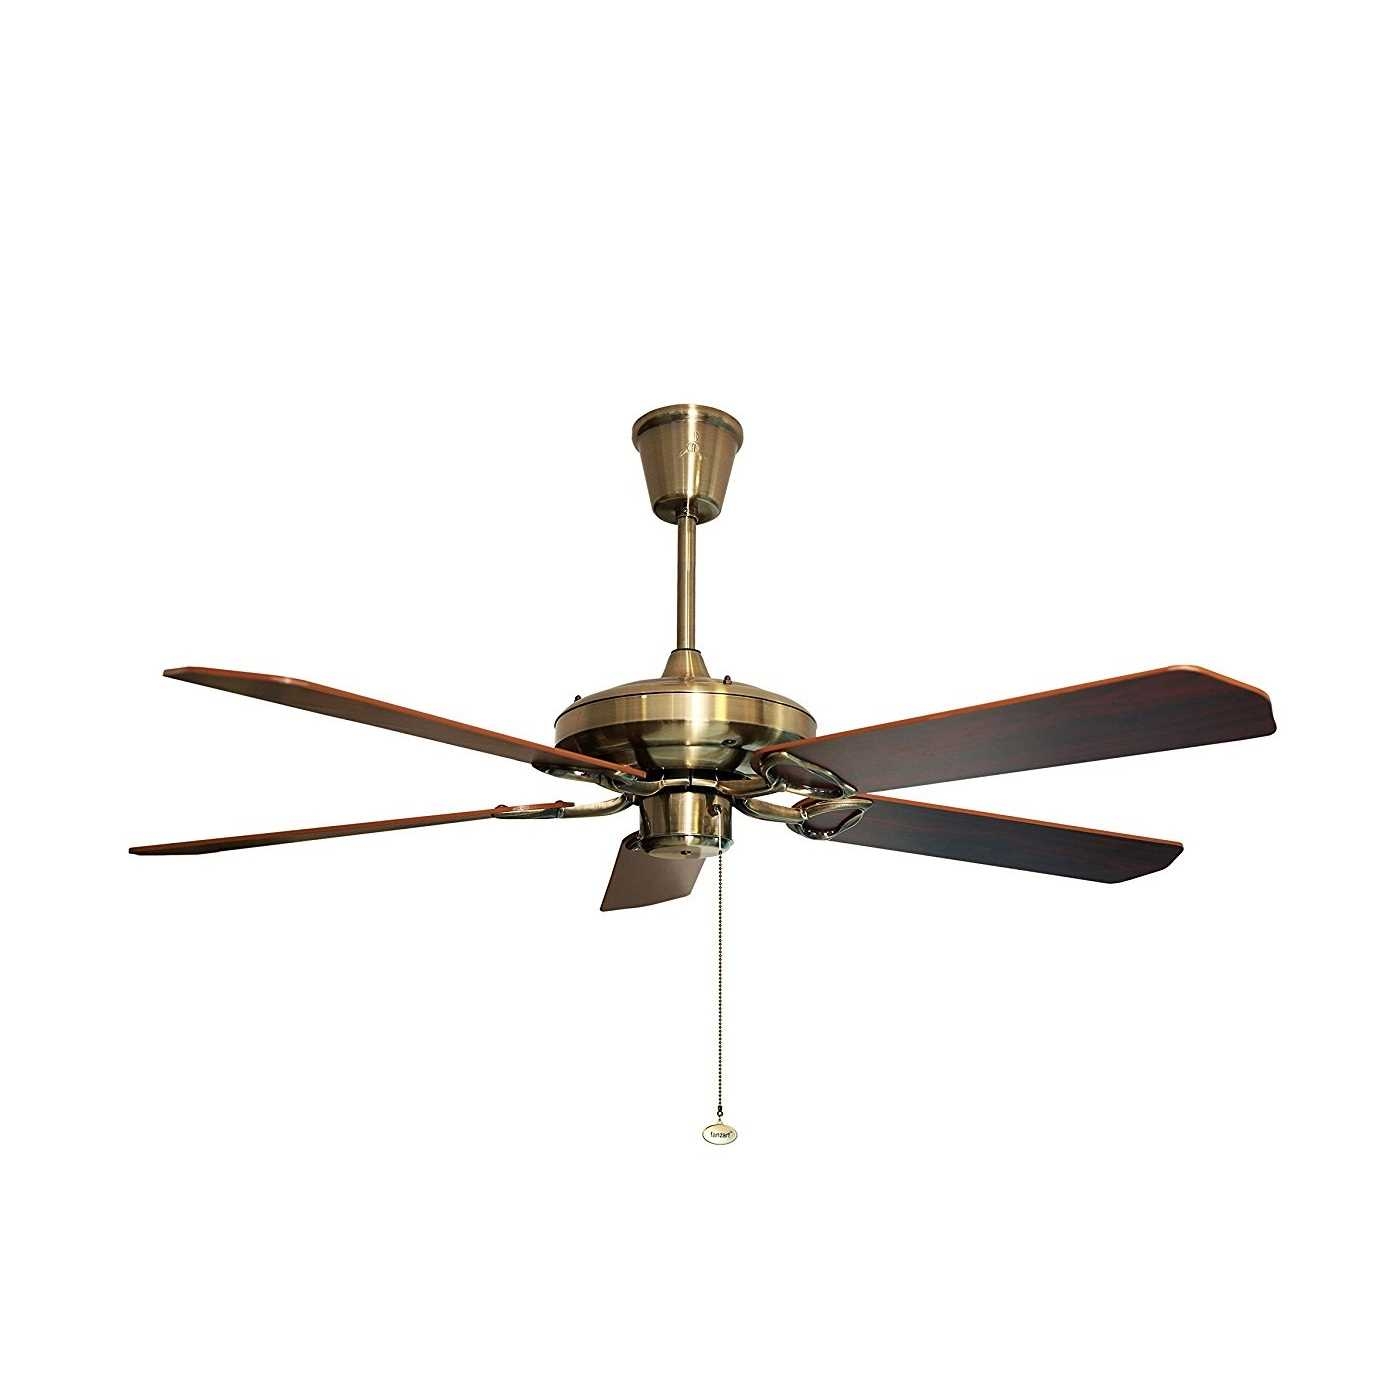 Fanzart classic ceiling fan price 5 may 2018 classic reviews and fanzart classic ceiling fan price 5 may 2018 classic reviews and specifications mozeypictures Gallery